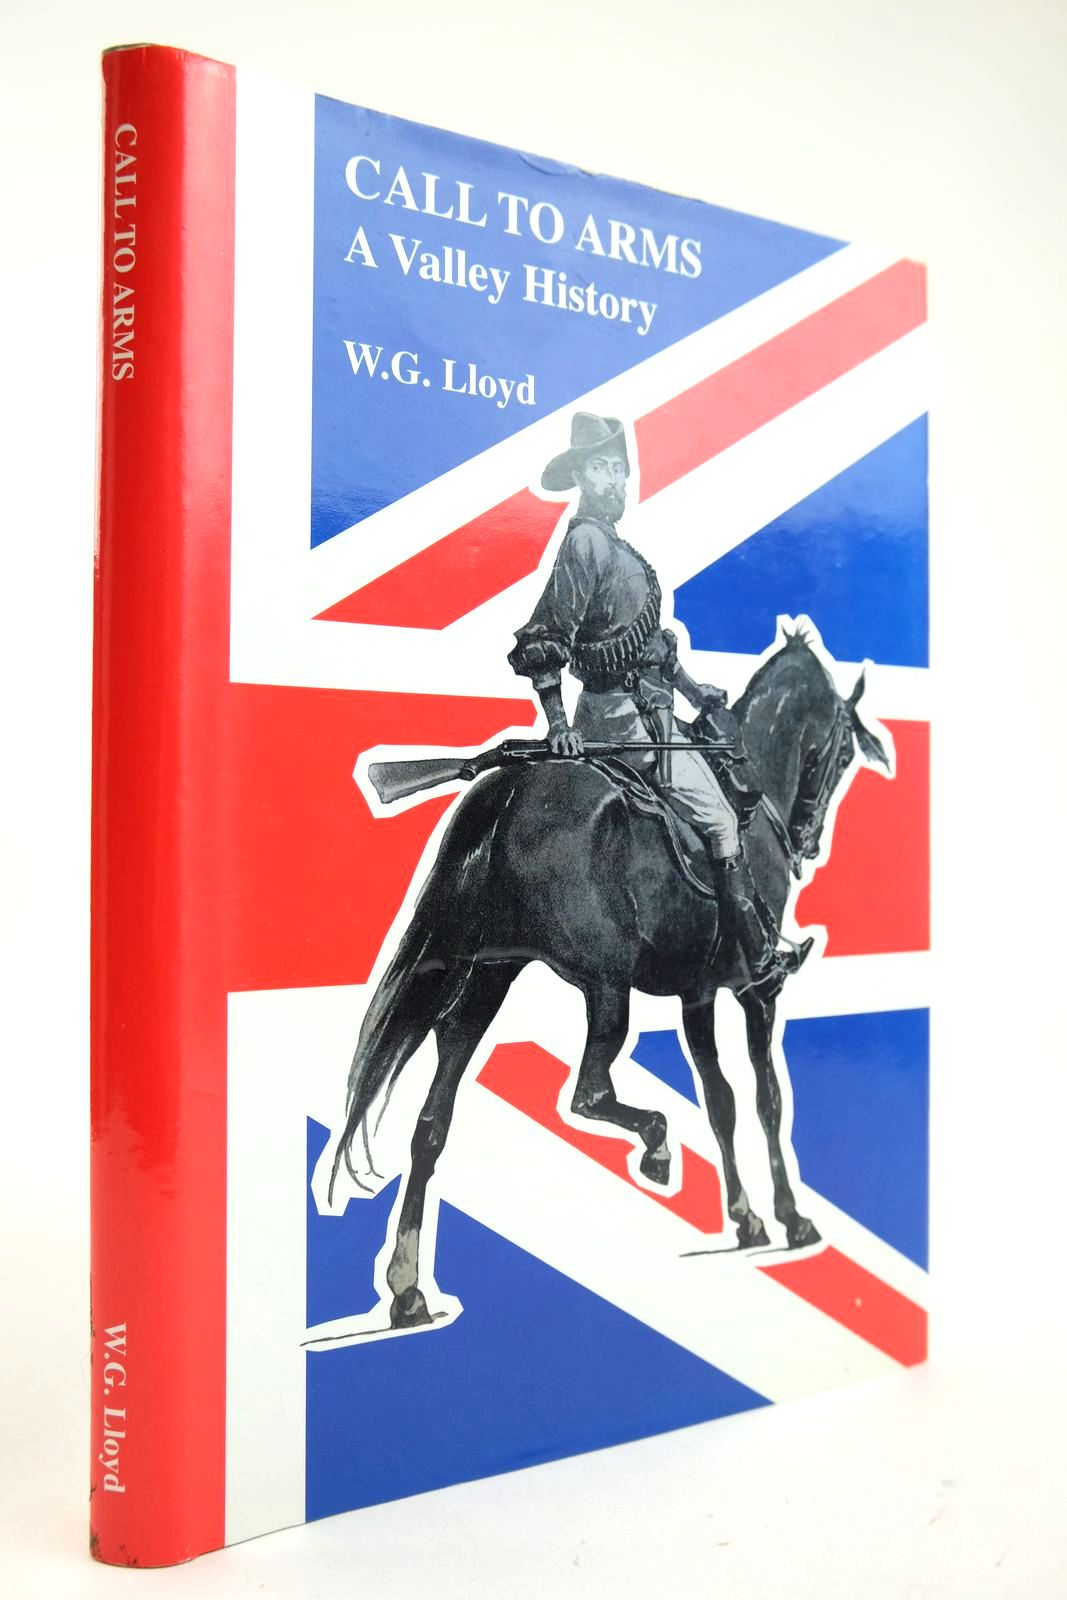 Photo of CALL TO ARMS A VALLEY HISTORY written by Lloyd, W.G. published by W.G. Lloyd (STOCK CODE: 2132879)  for sale by Stella & Rose's Books